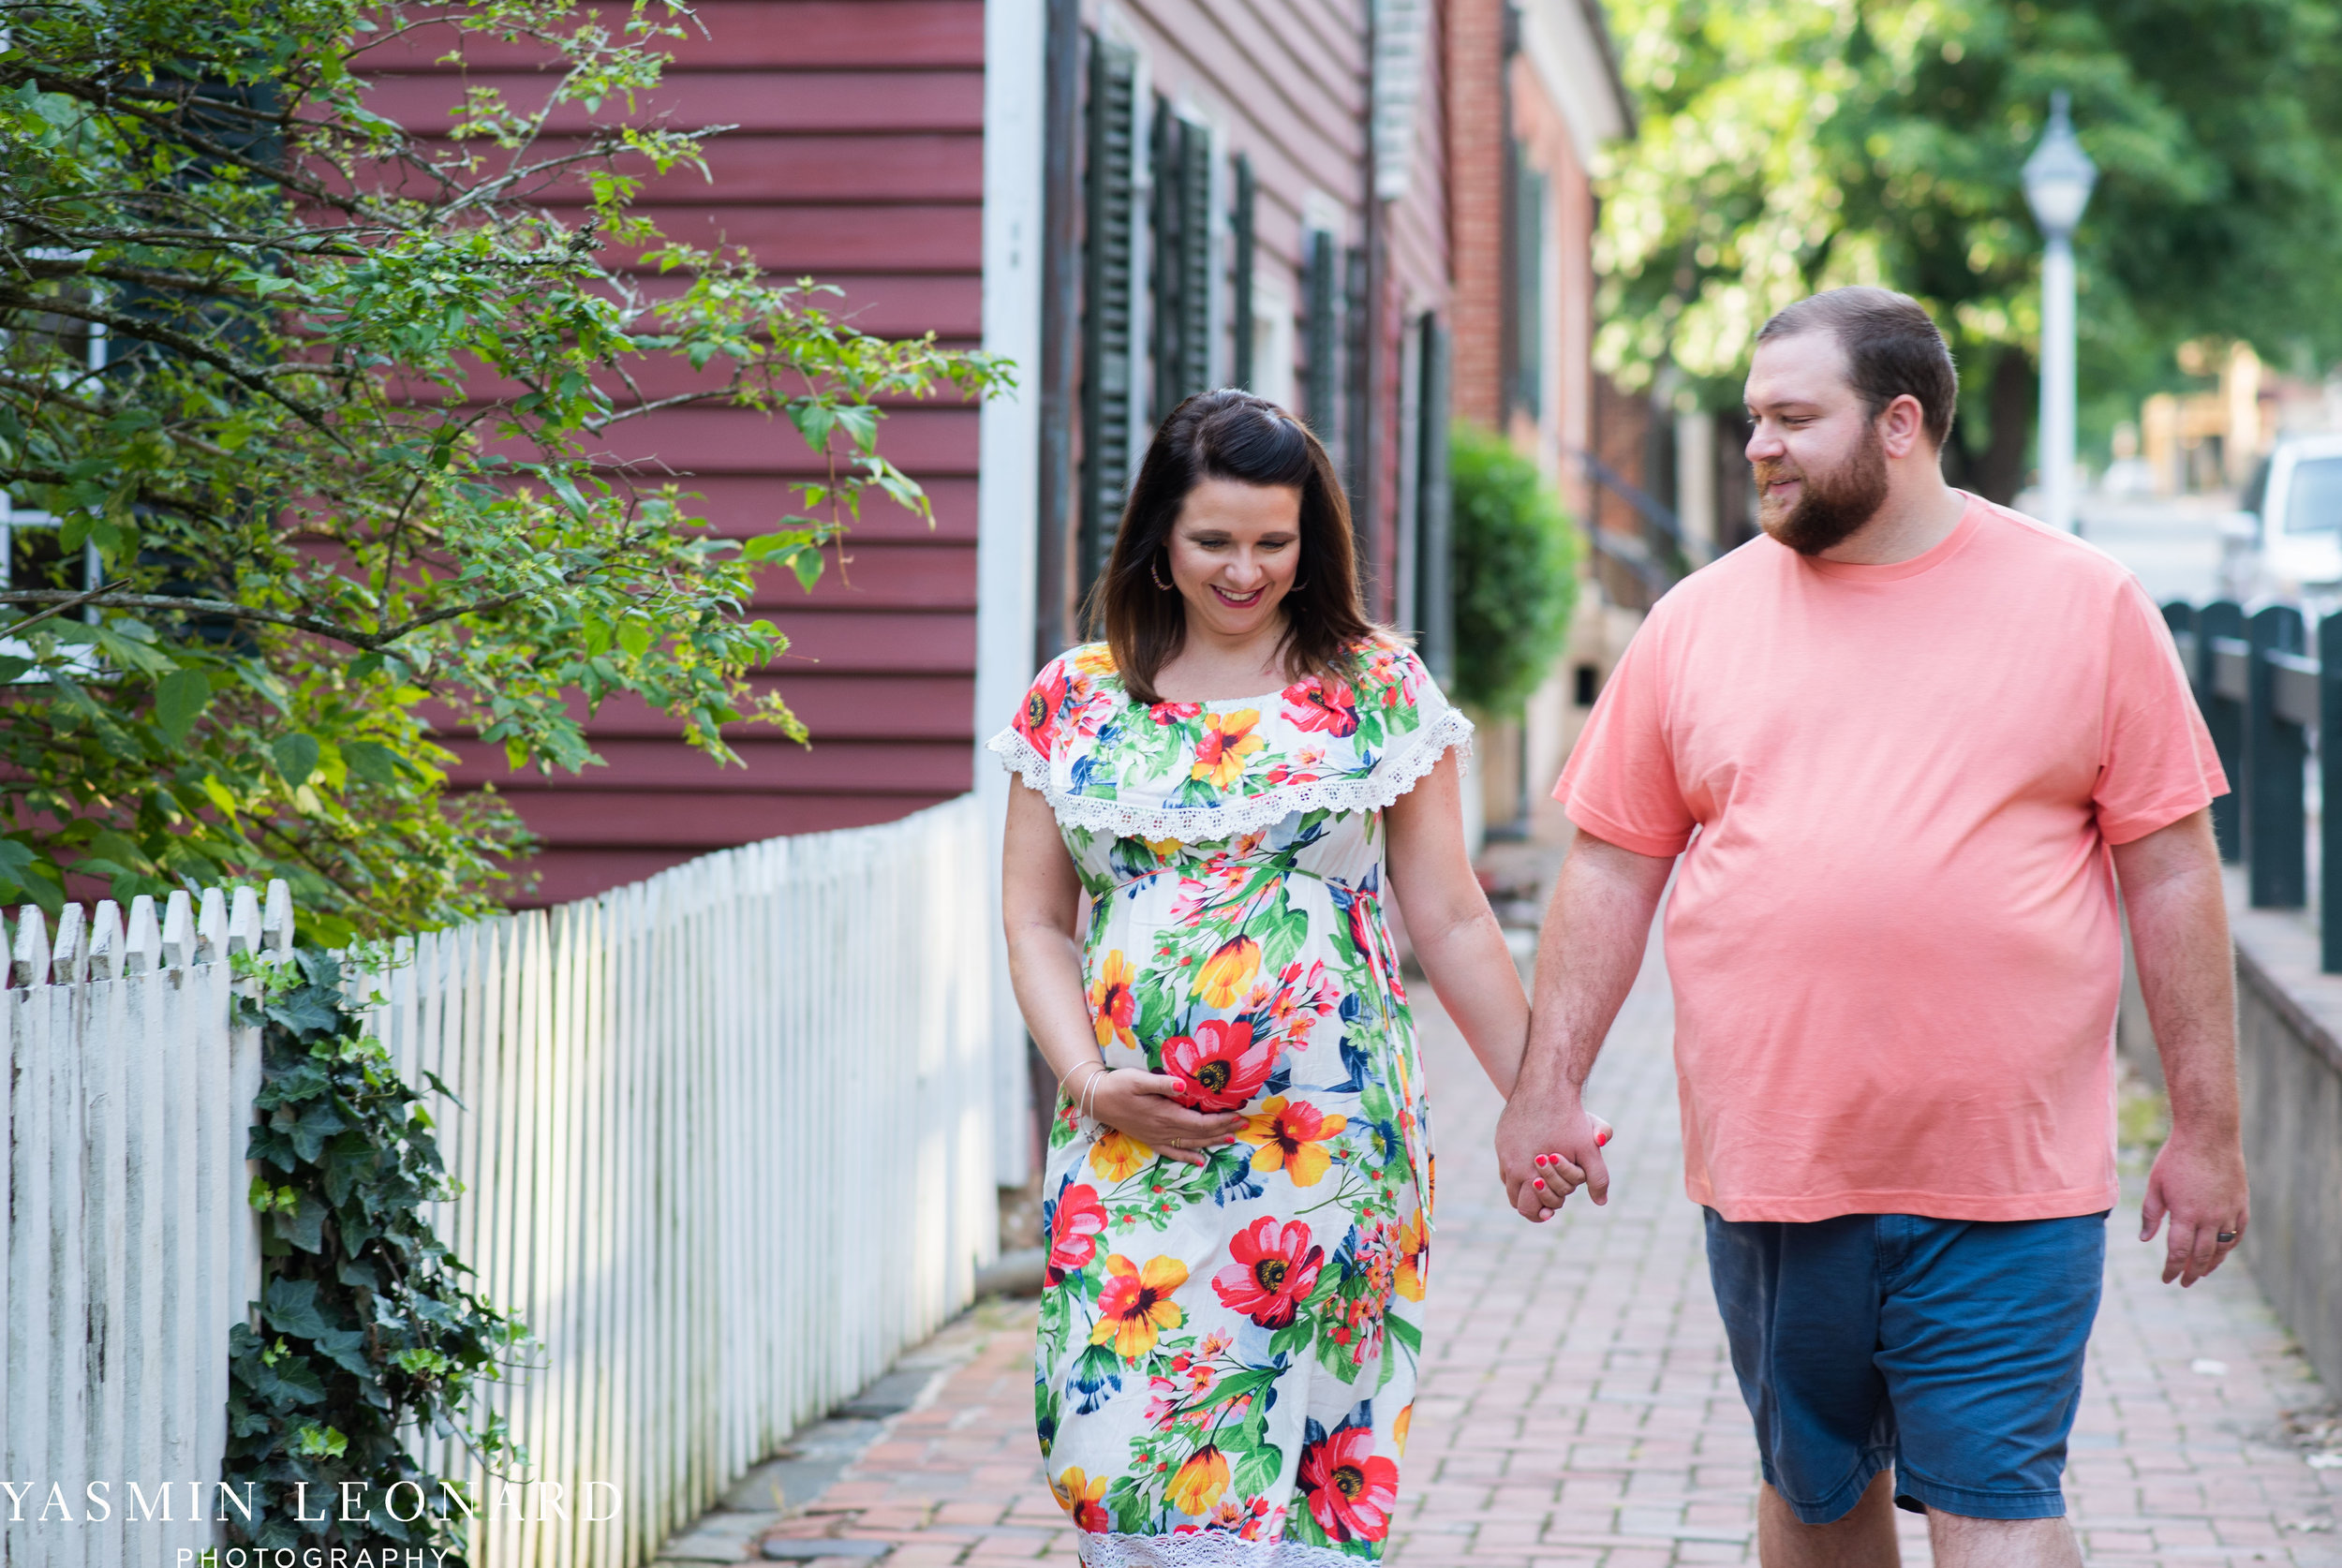 Maternity Session - Summer Maternity Session - Maternity Ideas - High Point Photographer - NC Photographer - What to wear Maternity Session-7.jpg